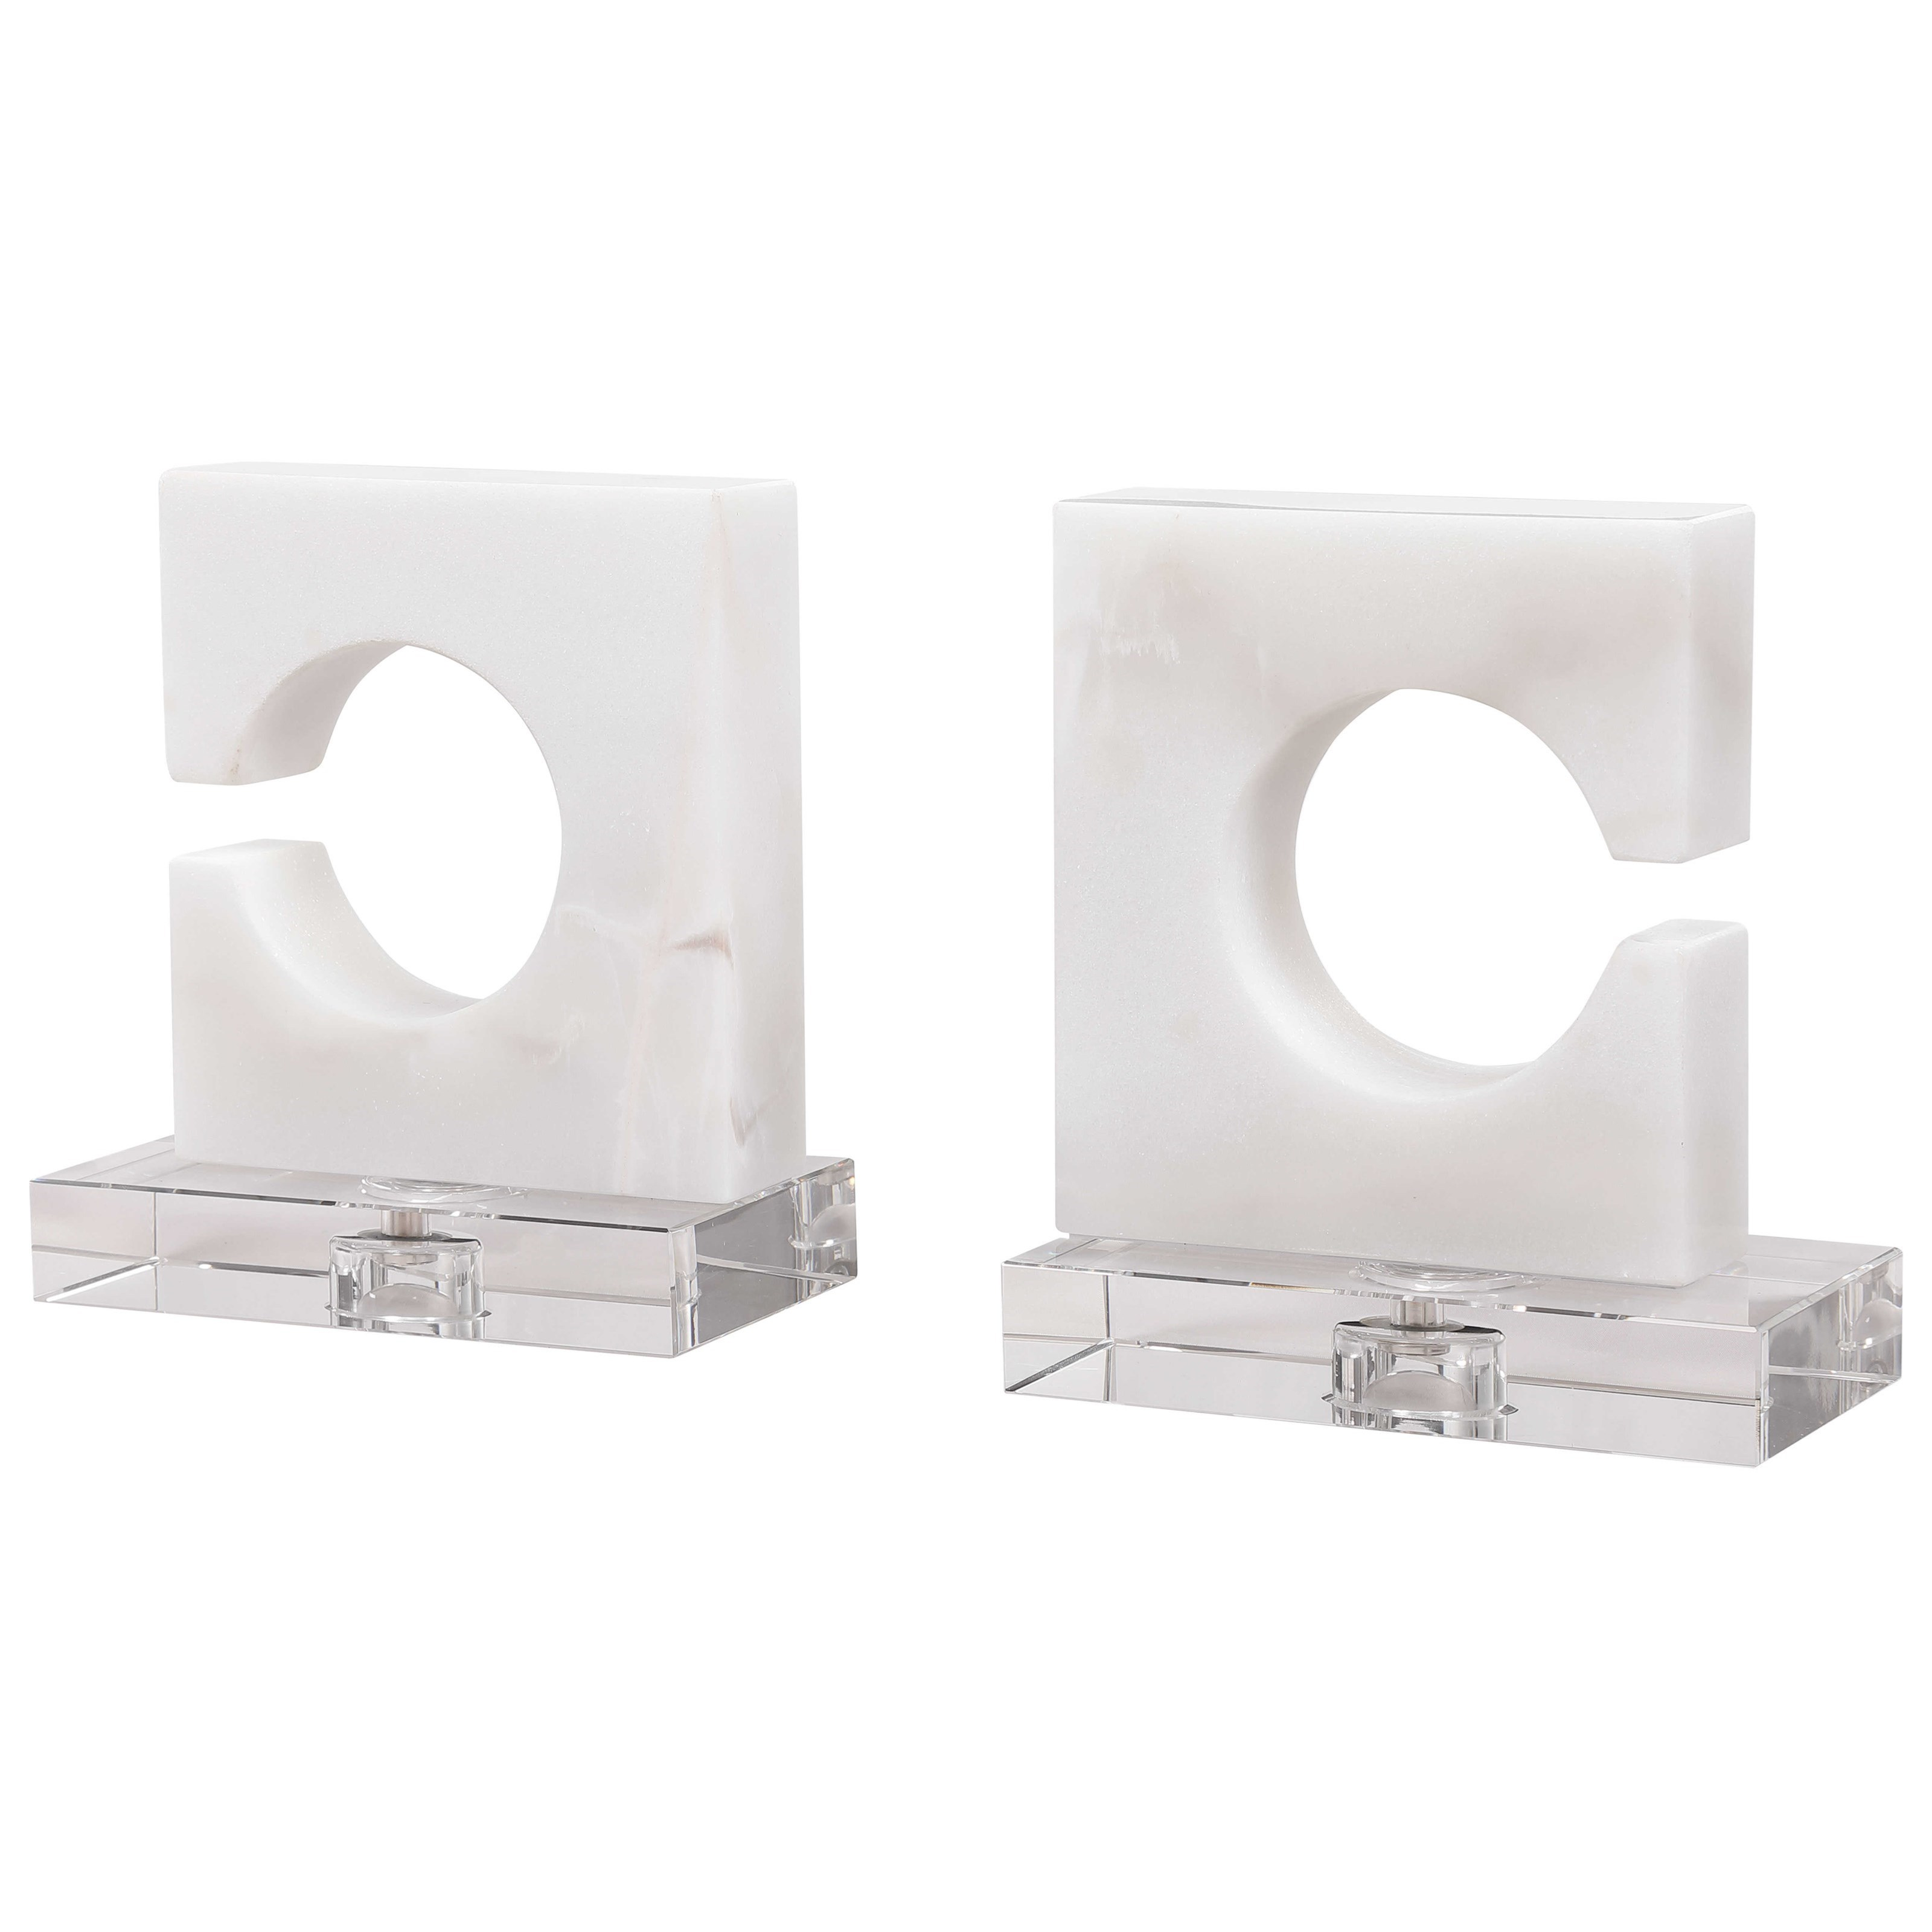 Accessories White & Gray Bookends, S/2 by Uttermost at Mueller Furniture